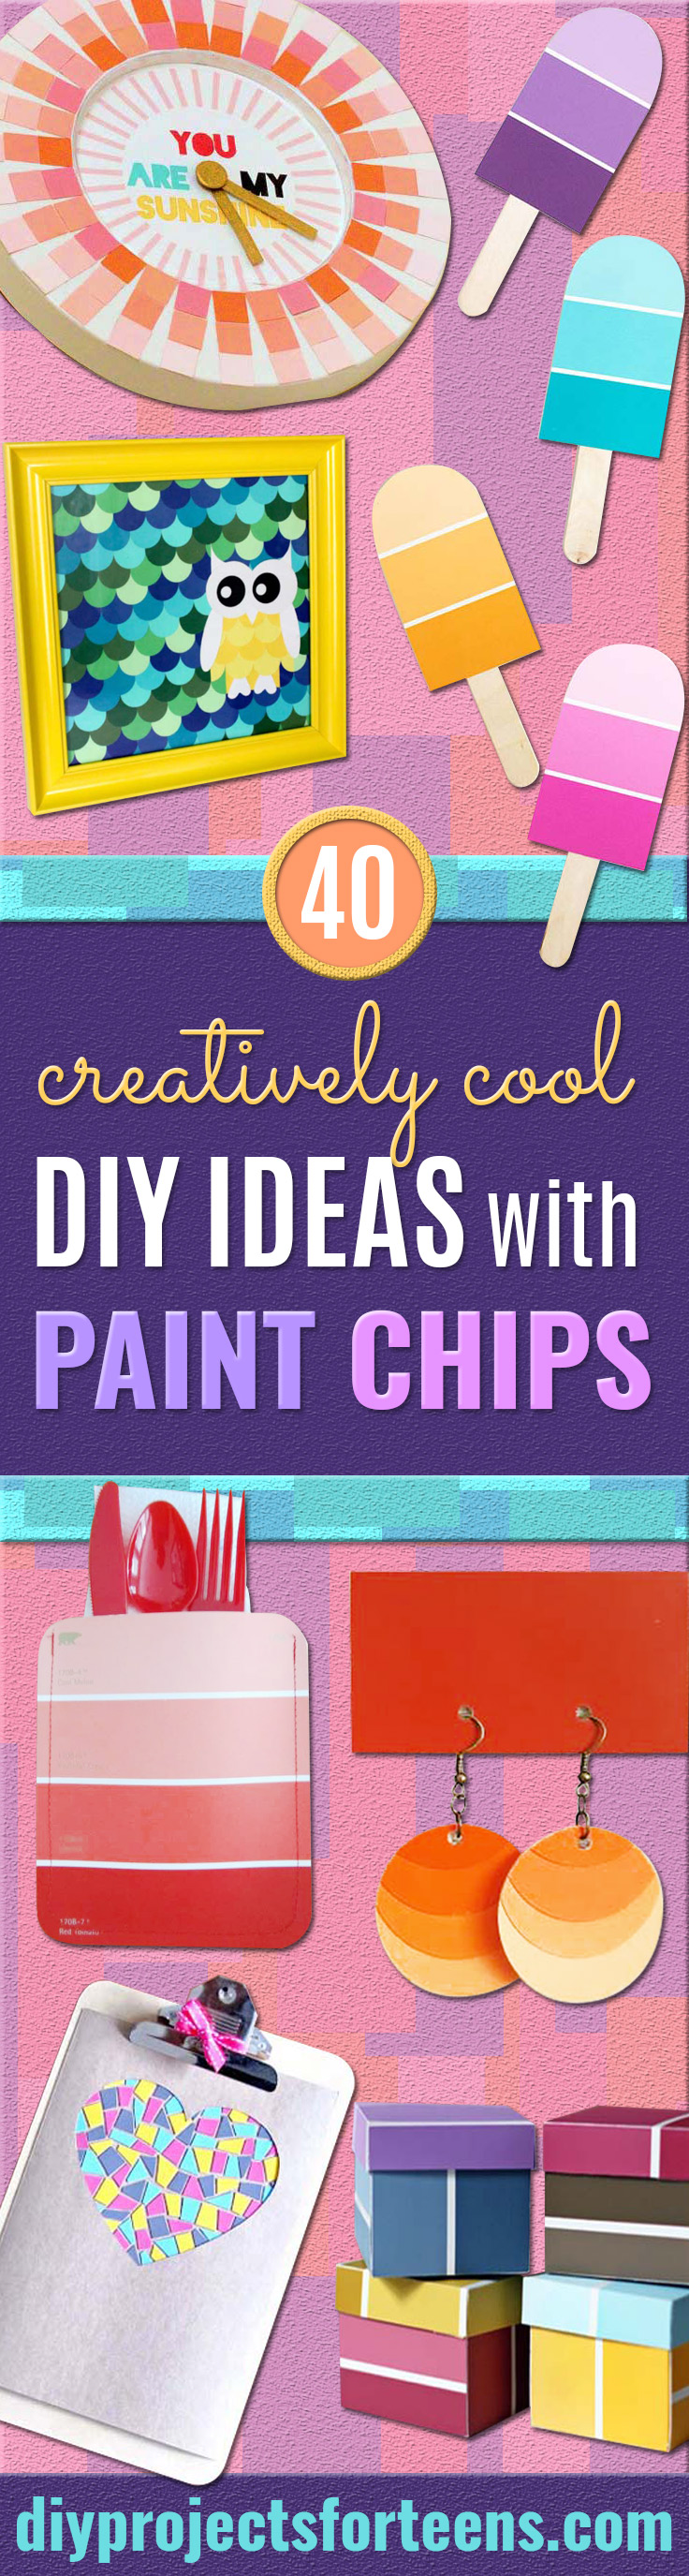 DIY Projects Made With Paint Chips - Best Creative Crafts, Easy DYI Projects You Can Make With Paint Chips - Cool and Crafty How To and Project Tutorials - Crafty DIY Home Decor Ideas That Make Awesome DIY Gifts and Christmas Presents for Friends and Family http://diyjoy.com/diy-projects-paint-chips